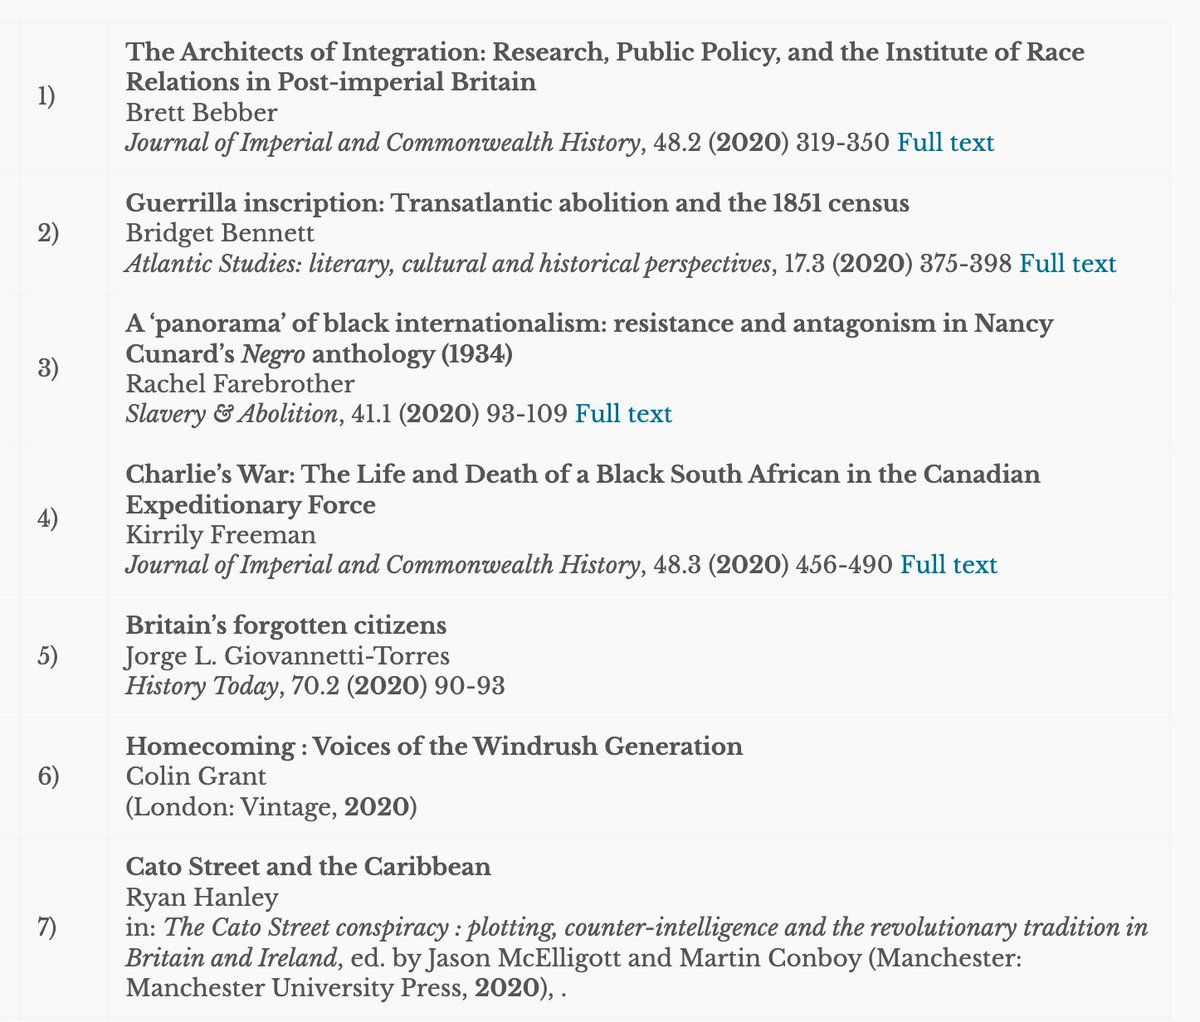 Weve created a free listing of 400+ recent publications on Black British History, taken from the Bibliography of British & Irish History. All published 2010-2020: about.brepolis.net/uk-black-briti… Thanks to @Brepols for their help and @RoyalHistSoc #BlackHistoryMonth #Twitterstorians